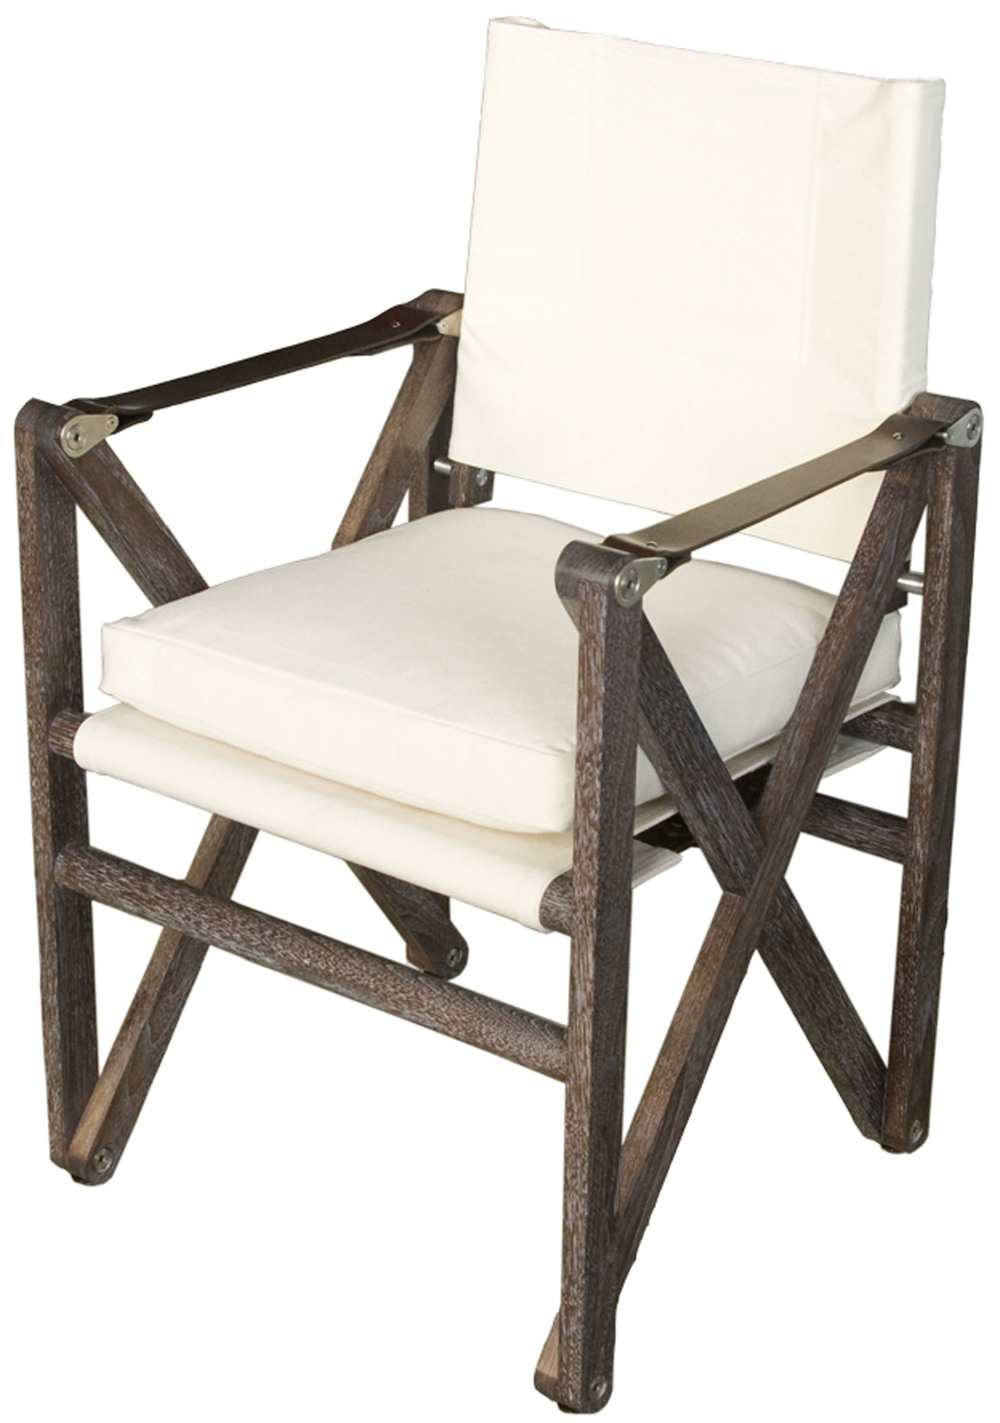 MacLaren Dining Chair  Marrakech stained and limed walnut with natural canvas and havana English bridle leather straps